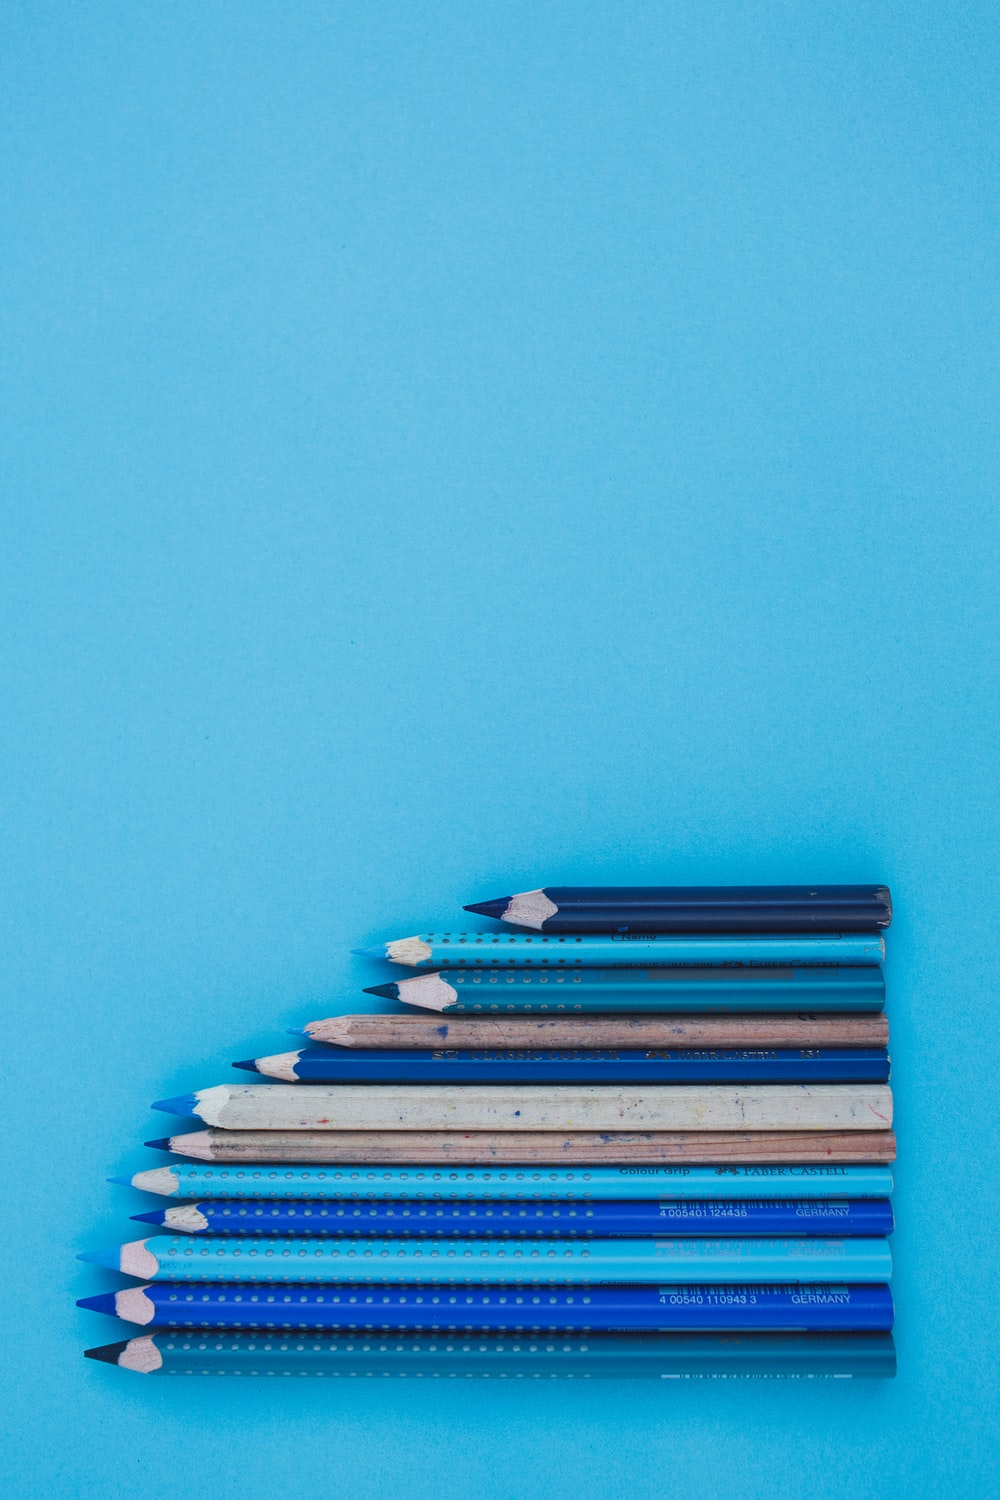 blue and white coloring pencils